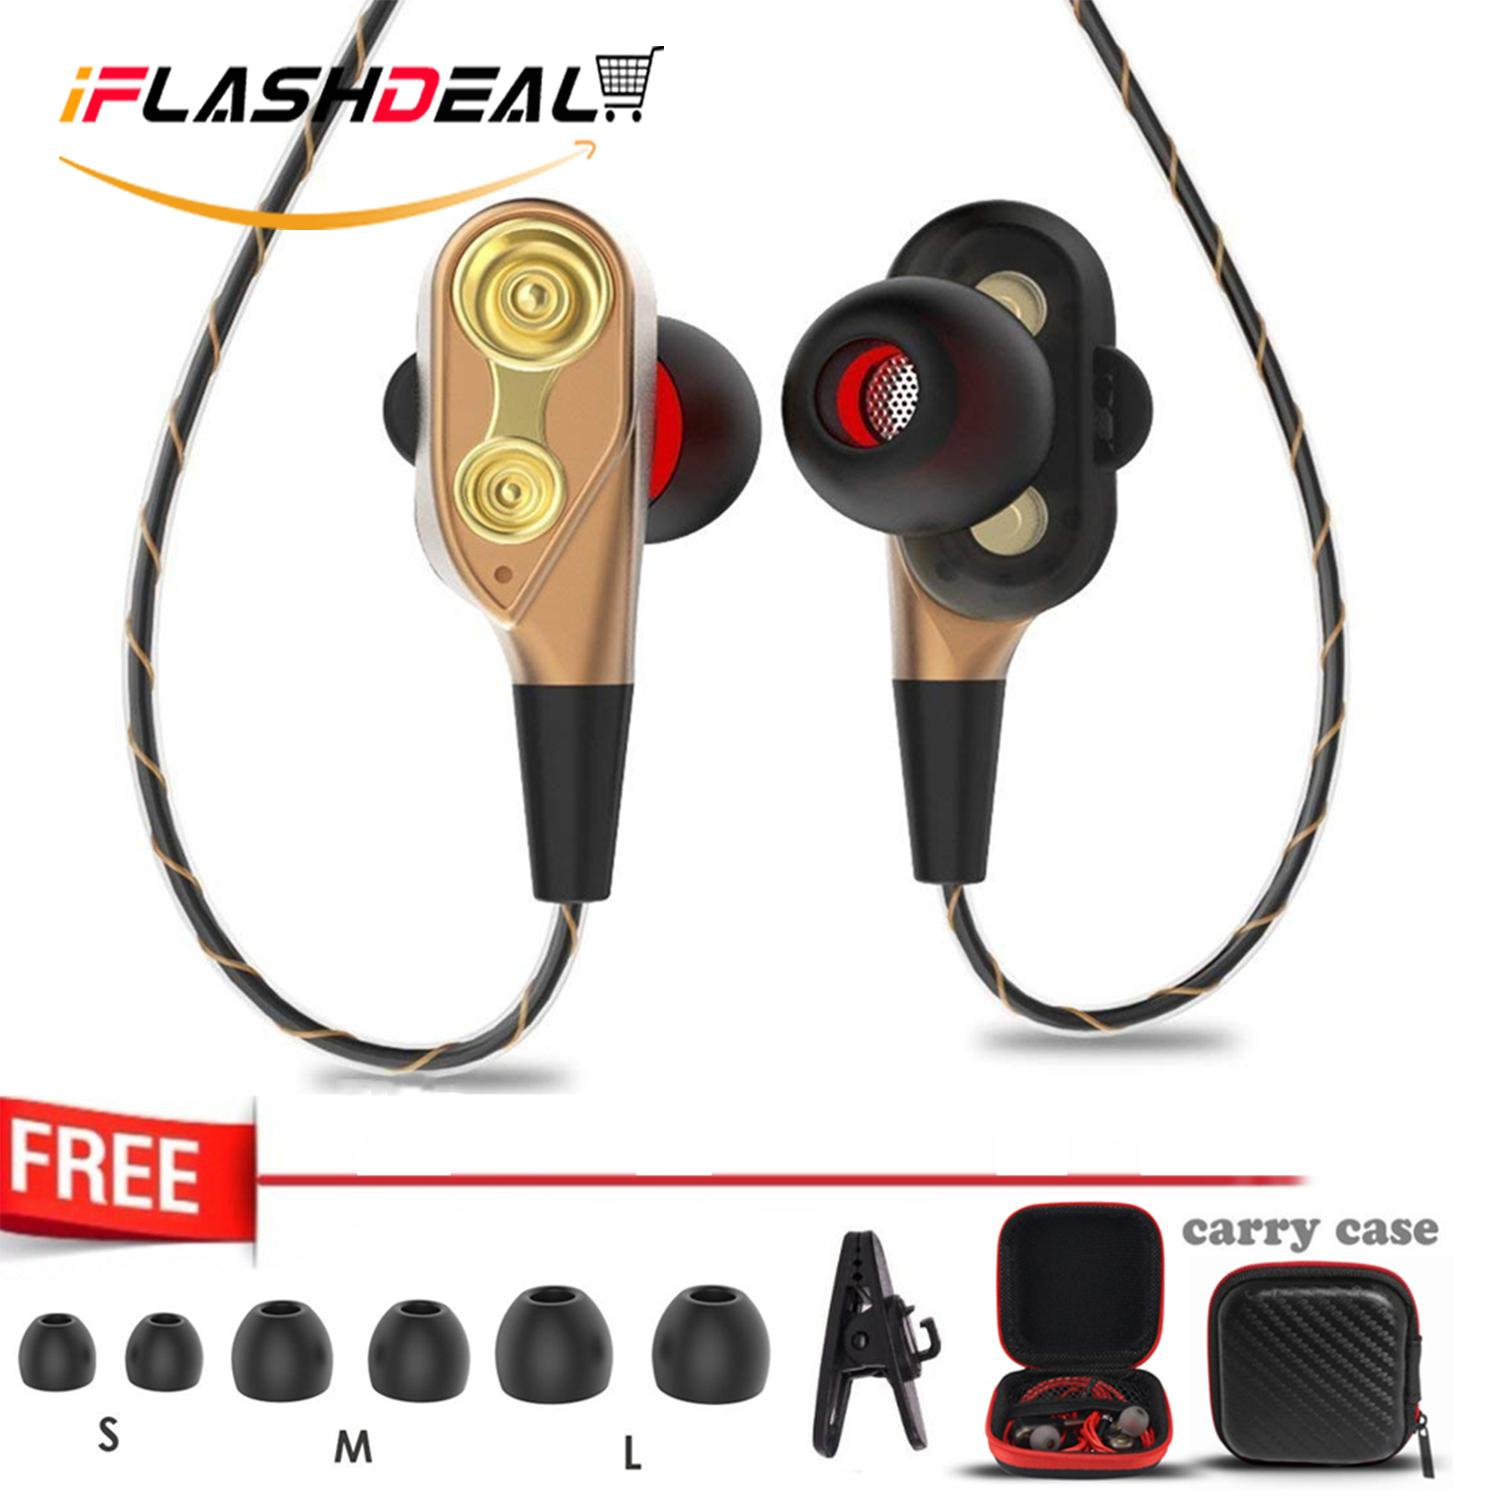 iFlashDeal In-Ear Headphones Wired Earphone Earbuds Dual Dynamic Drivers Earphones with Mic Strong Bass and Noise Reduction Volume Control Headset and Case for Cellphone